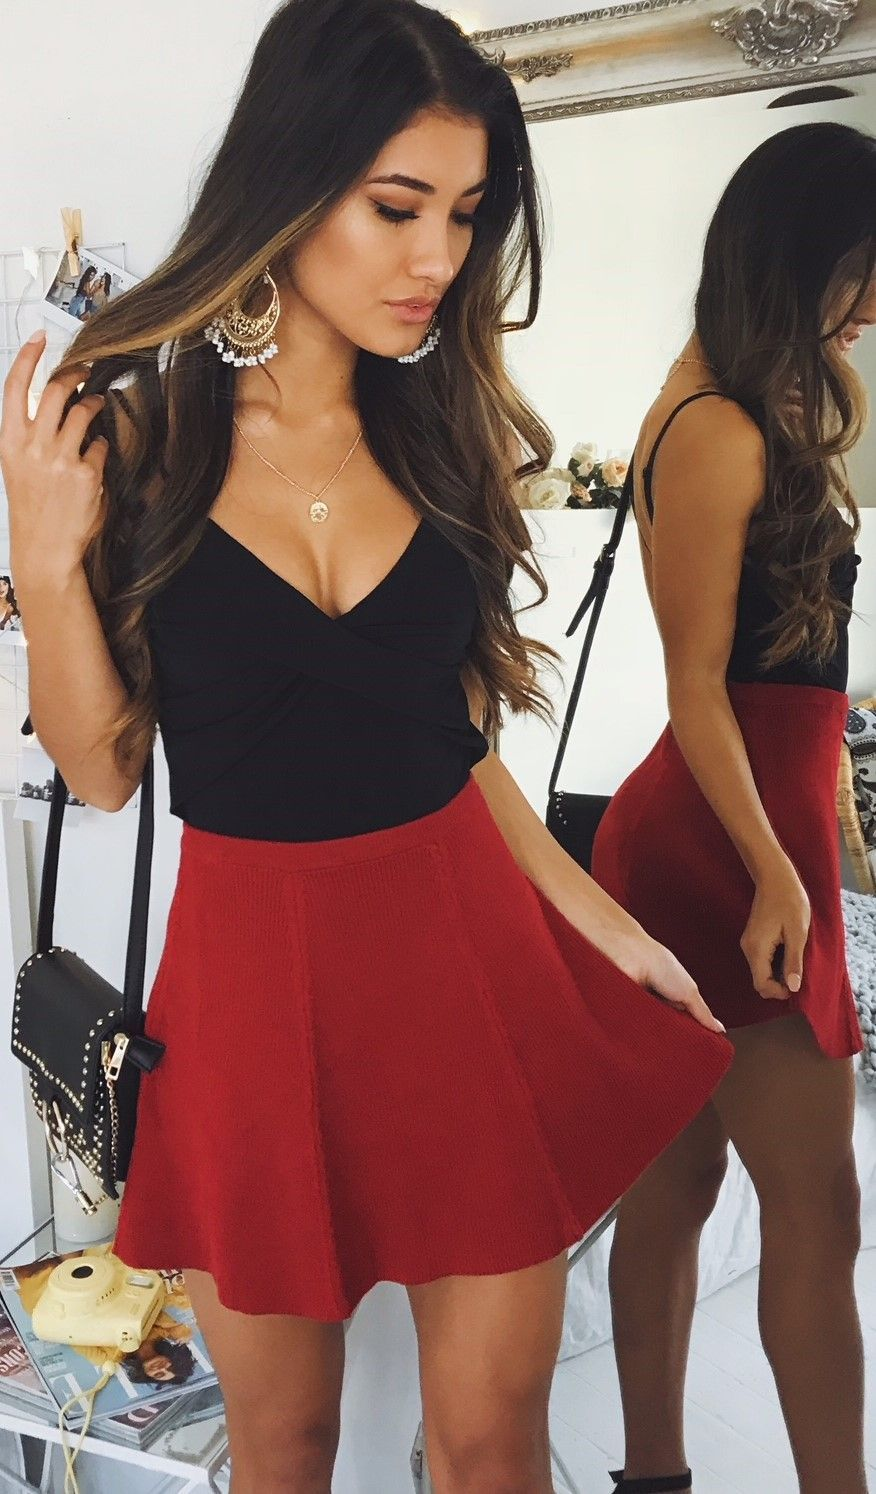 Date night outfit goals   Party outfit night club, Night ...